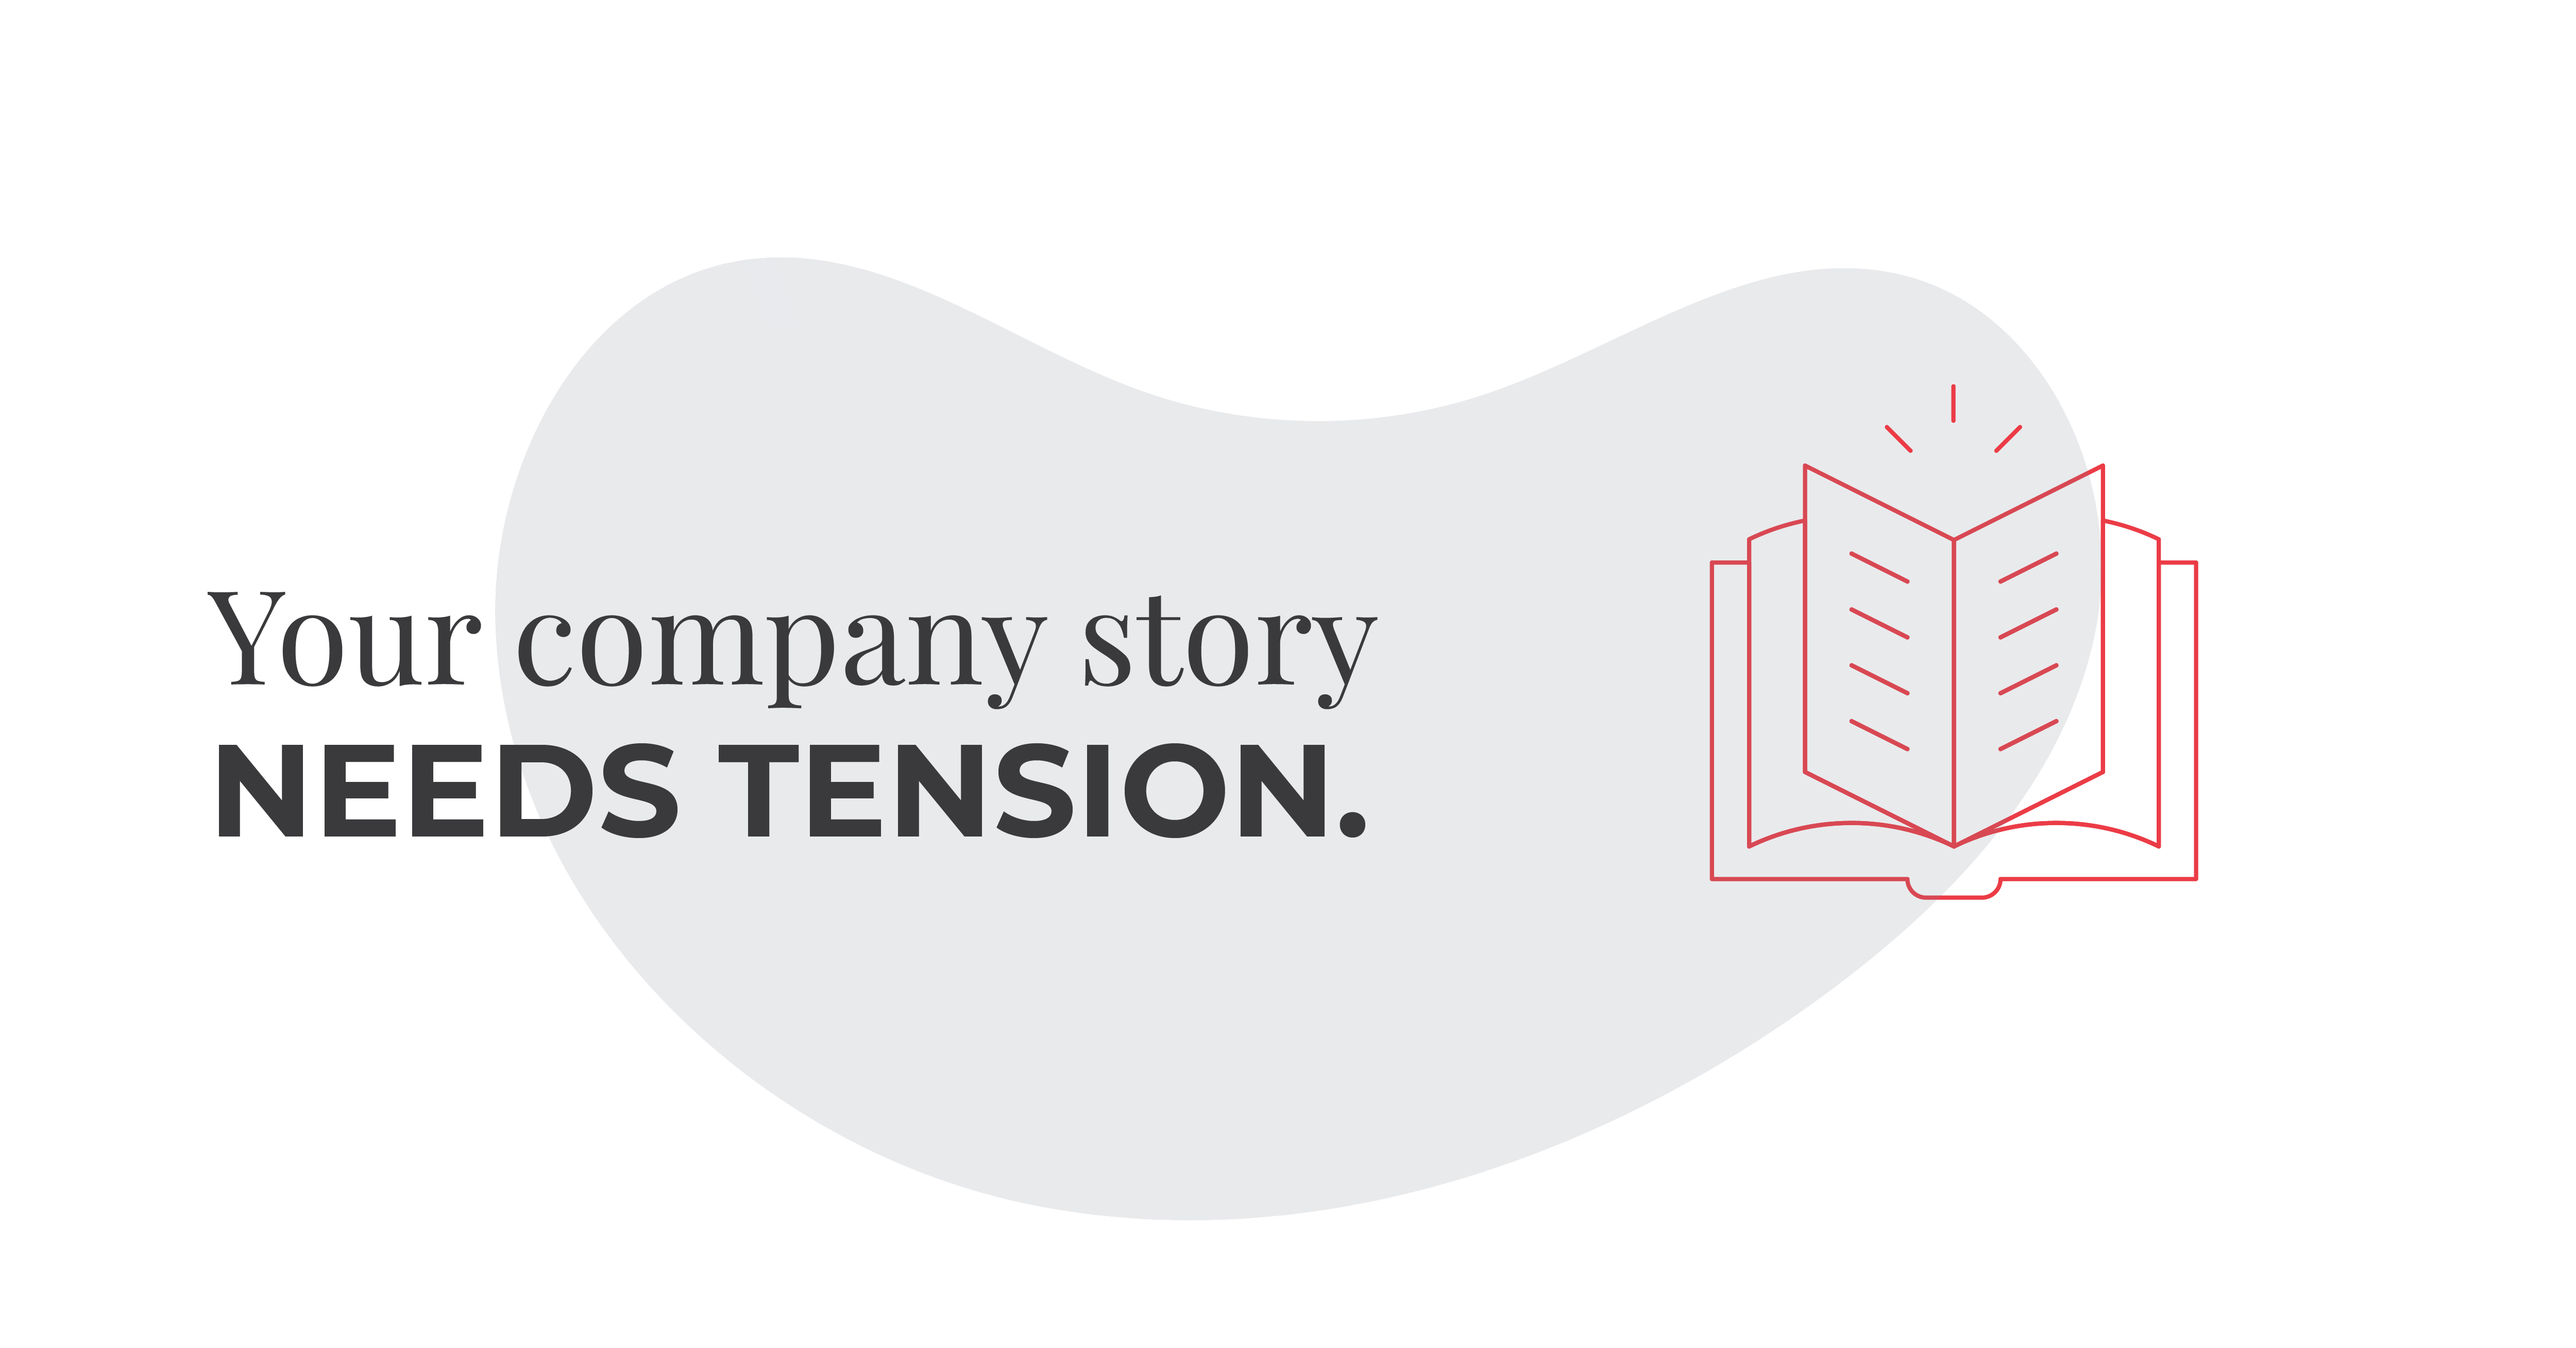 Your company story needs tension